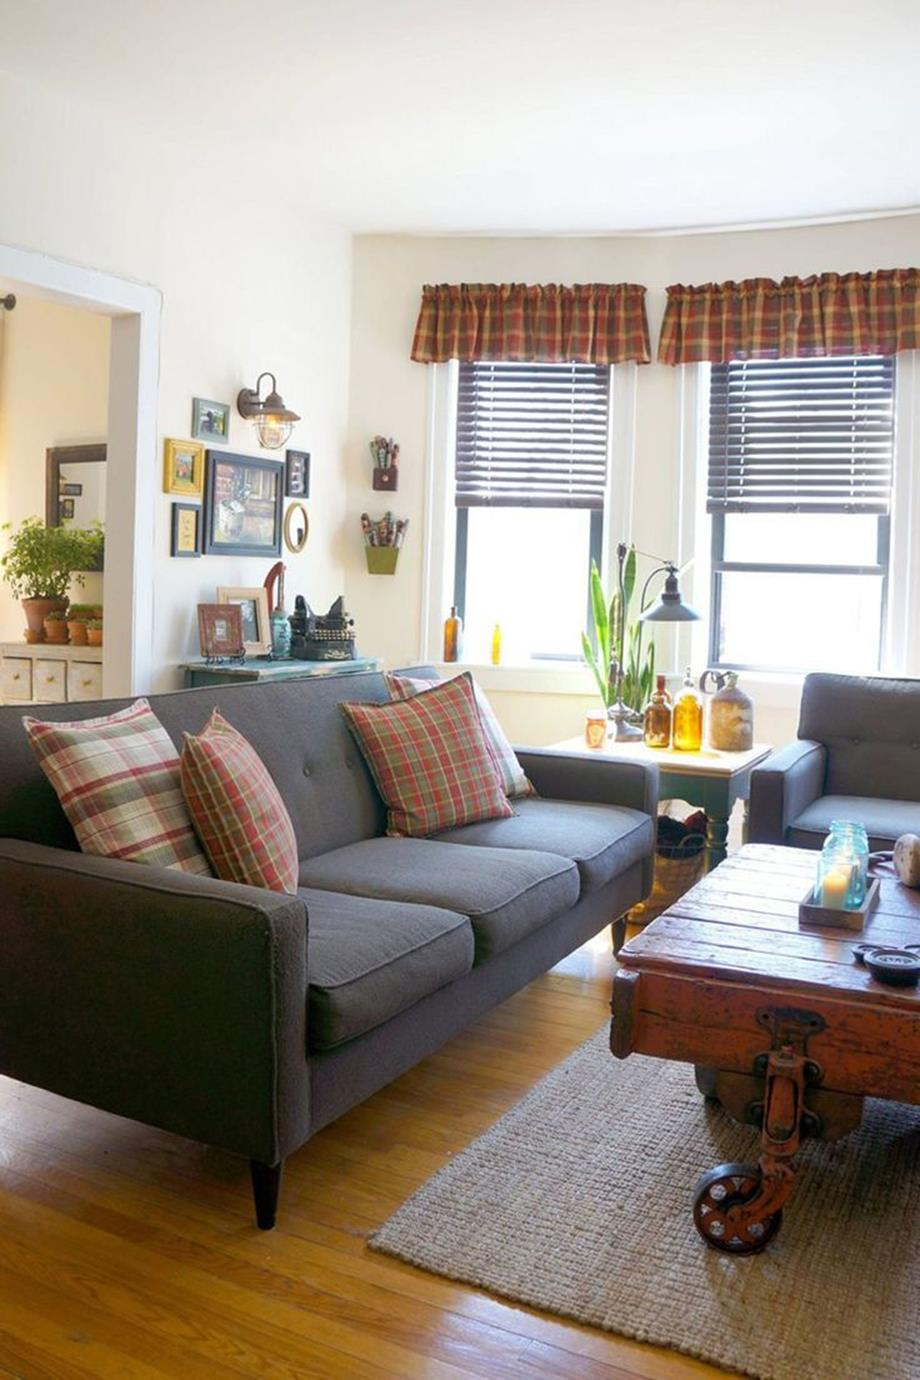 City Chic Living Room Decorating Ideas On a Budget 6